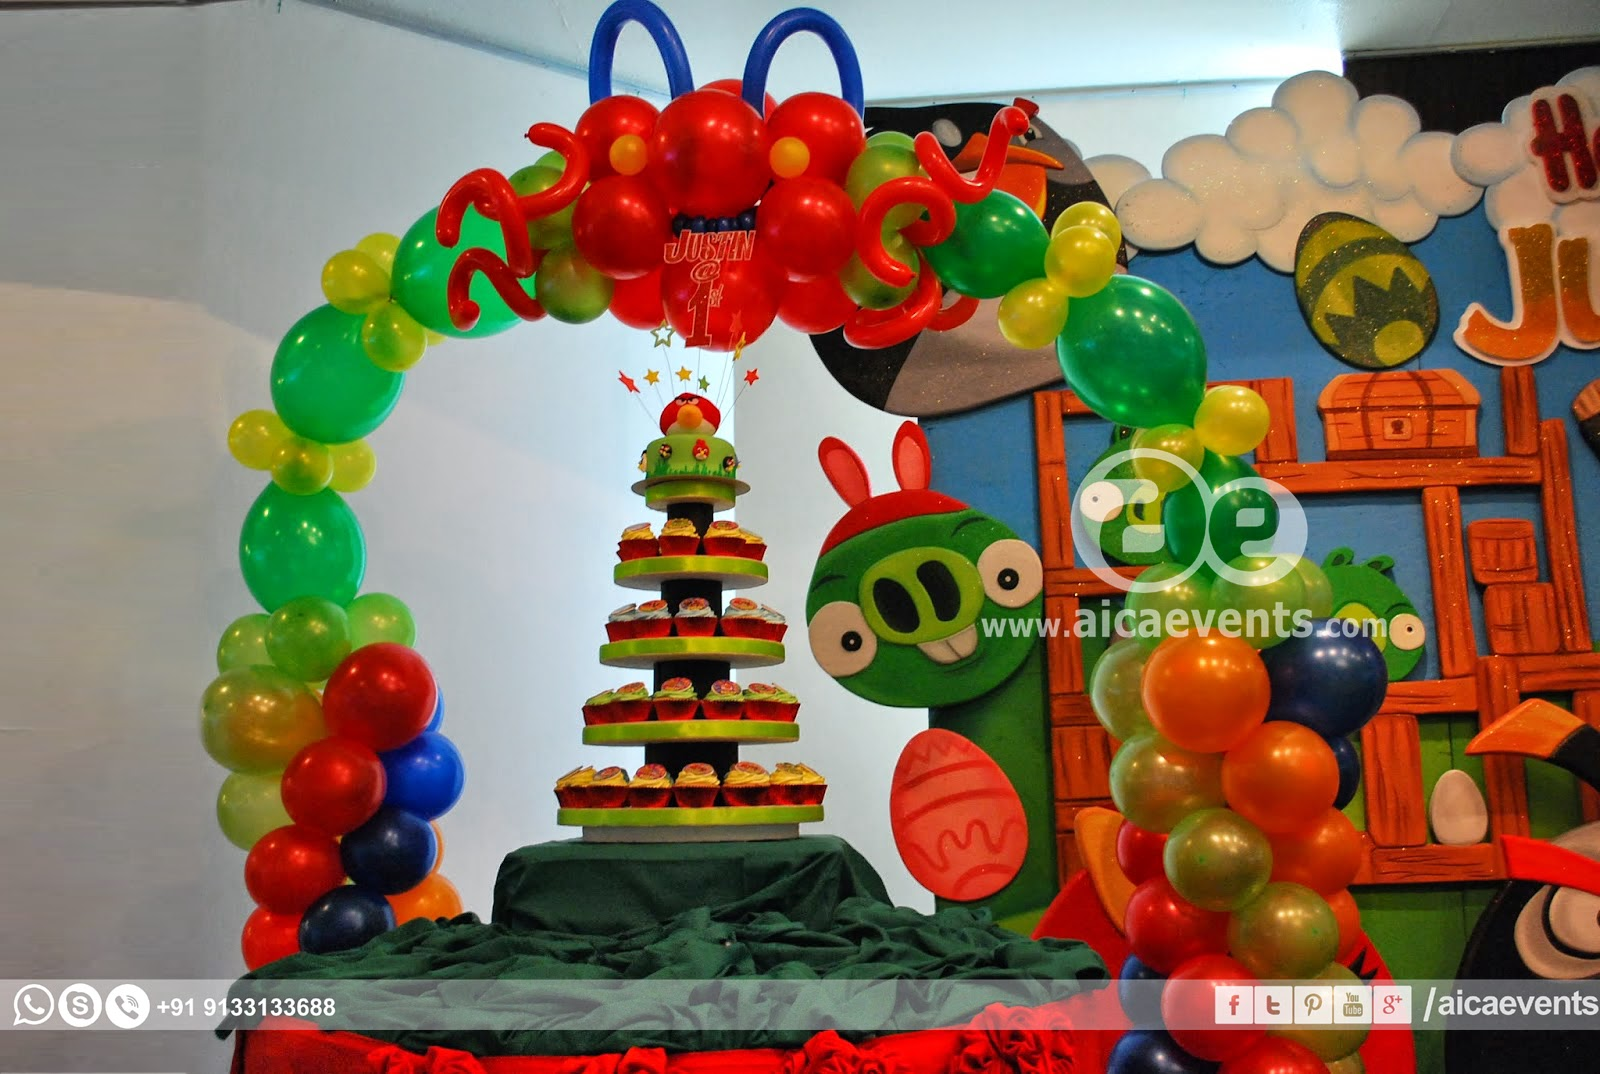 Aicaevents india angry bird theme decors for birthday parties for Angry birds party decoration ideas